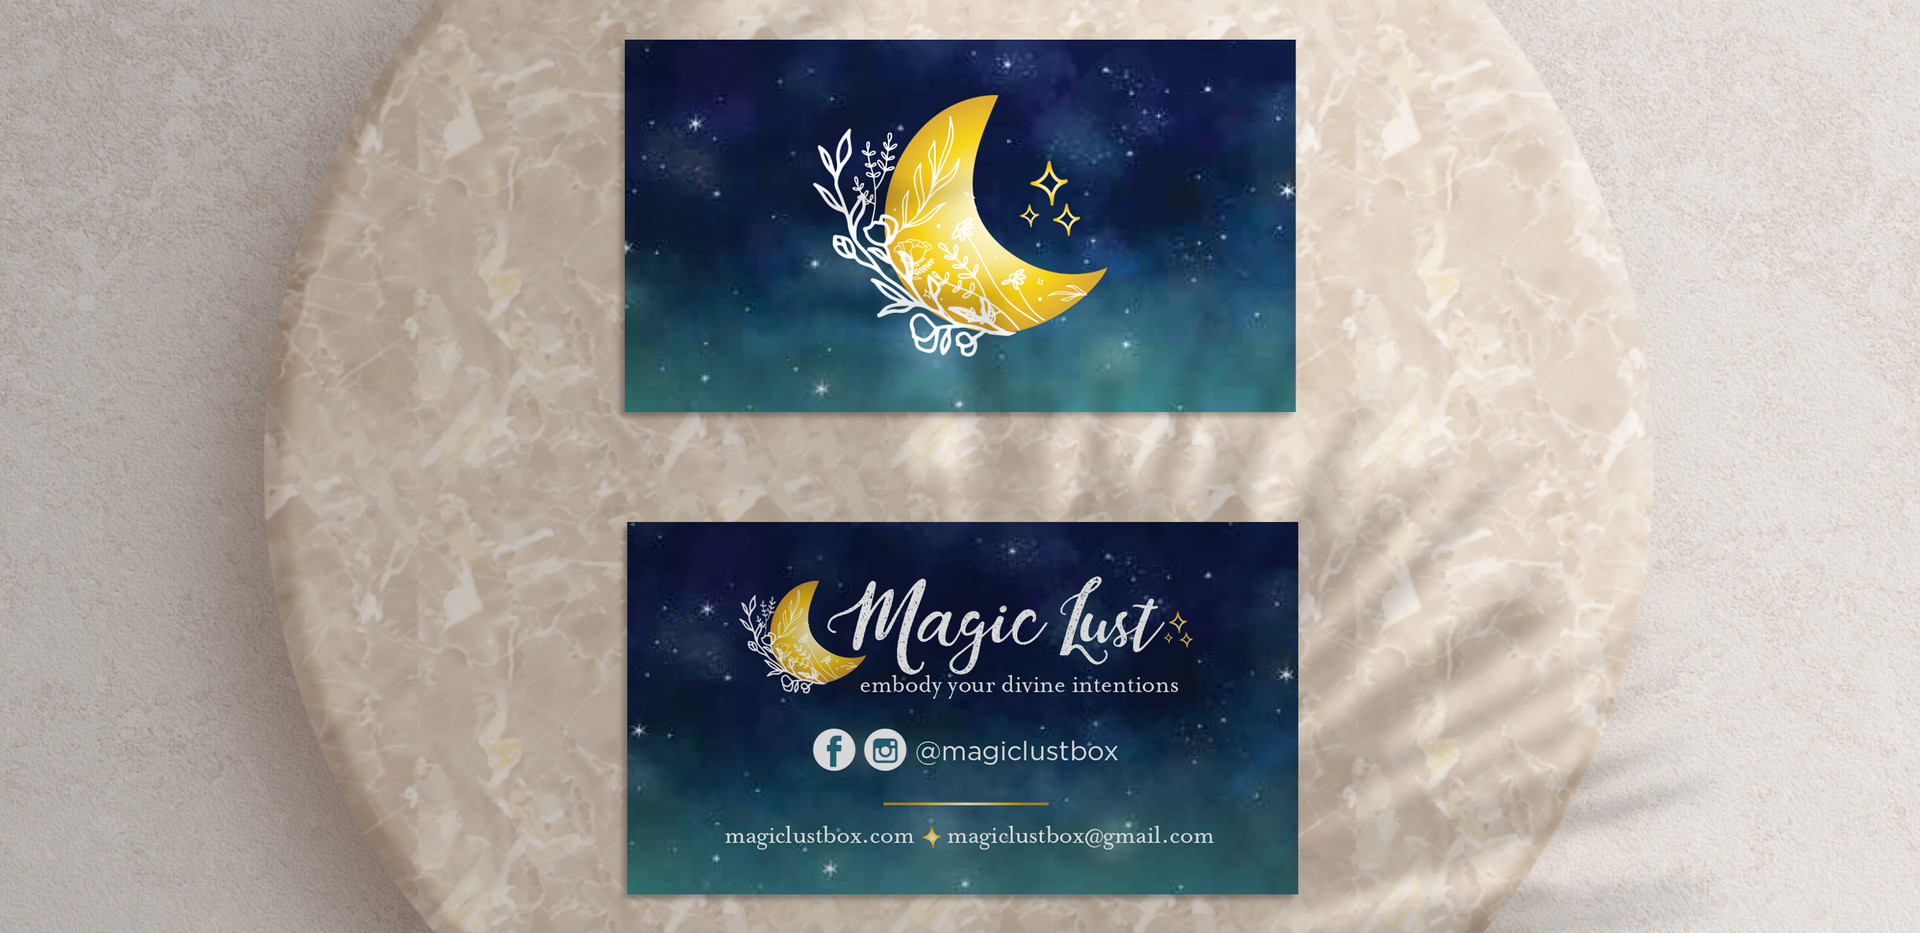 Magic Lust Business Cards